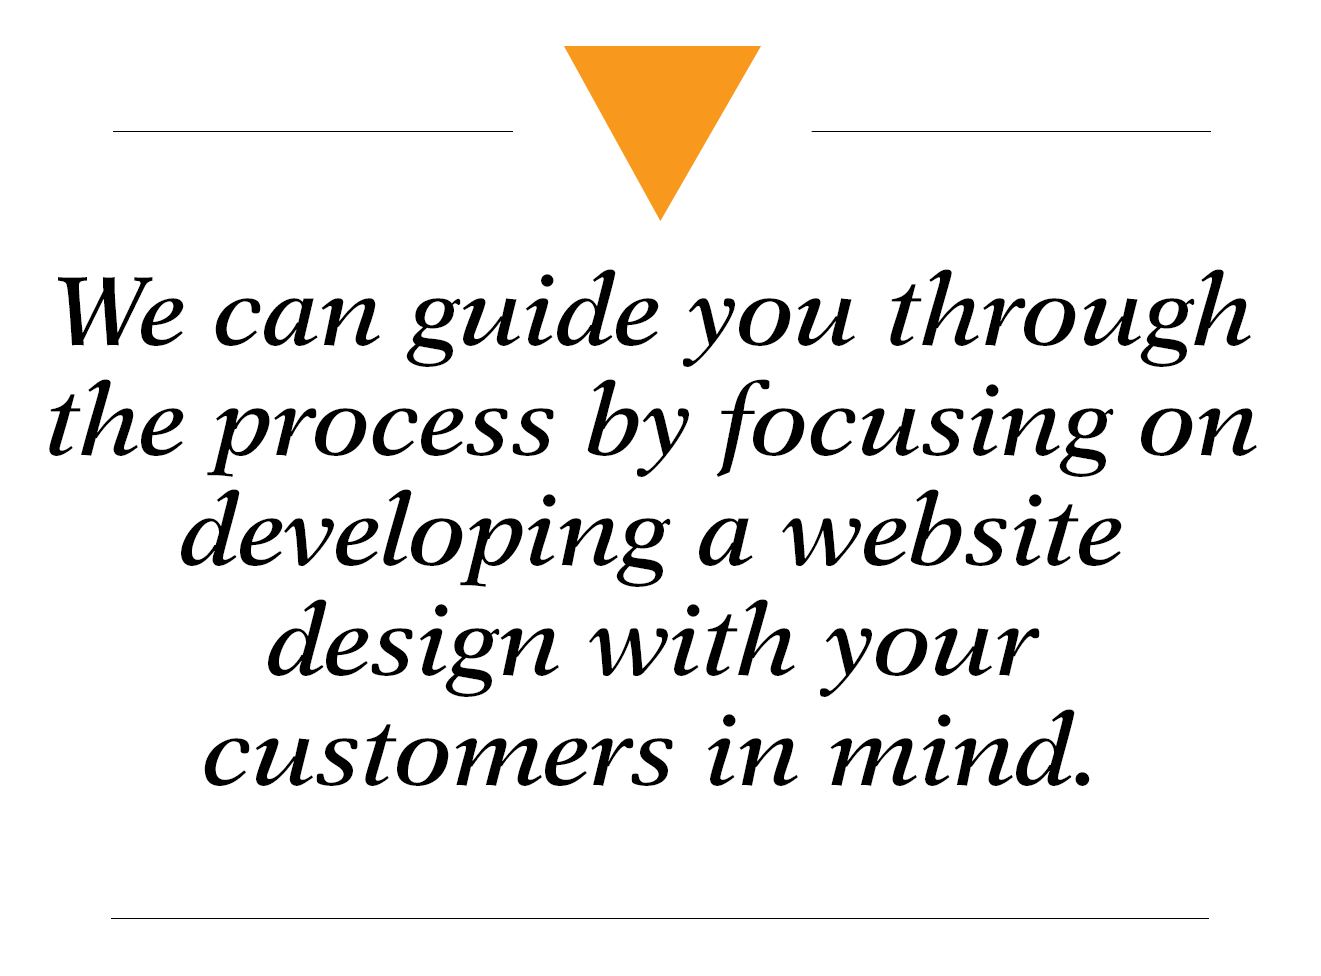 We can guide you through the process by focusing on developing a website design with your customers in mind - website development